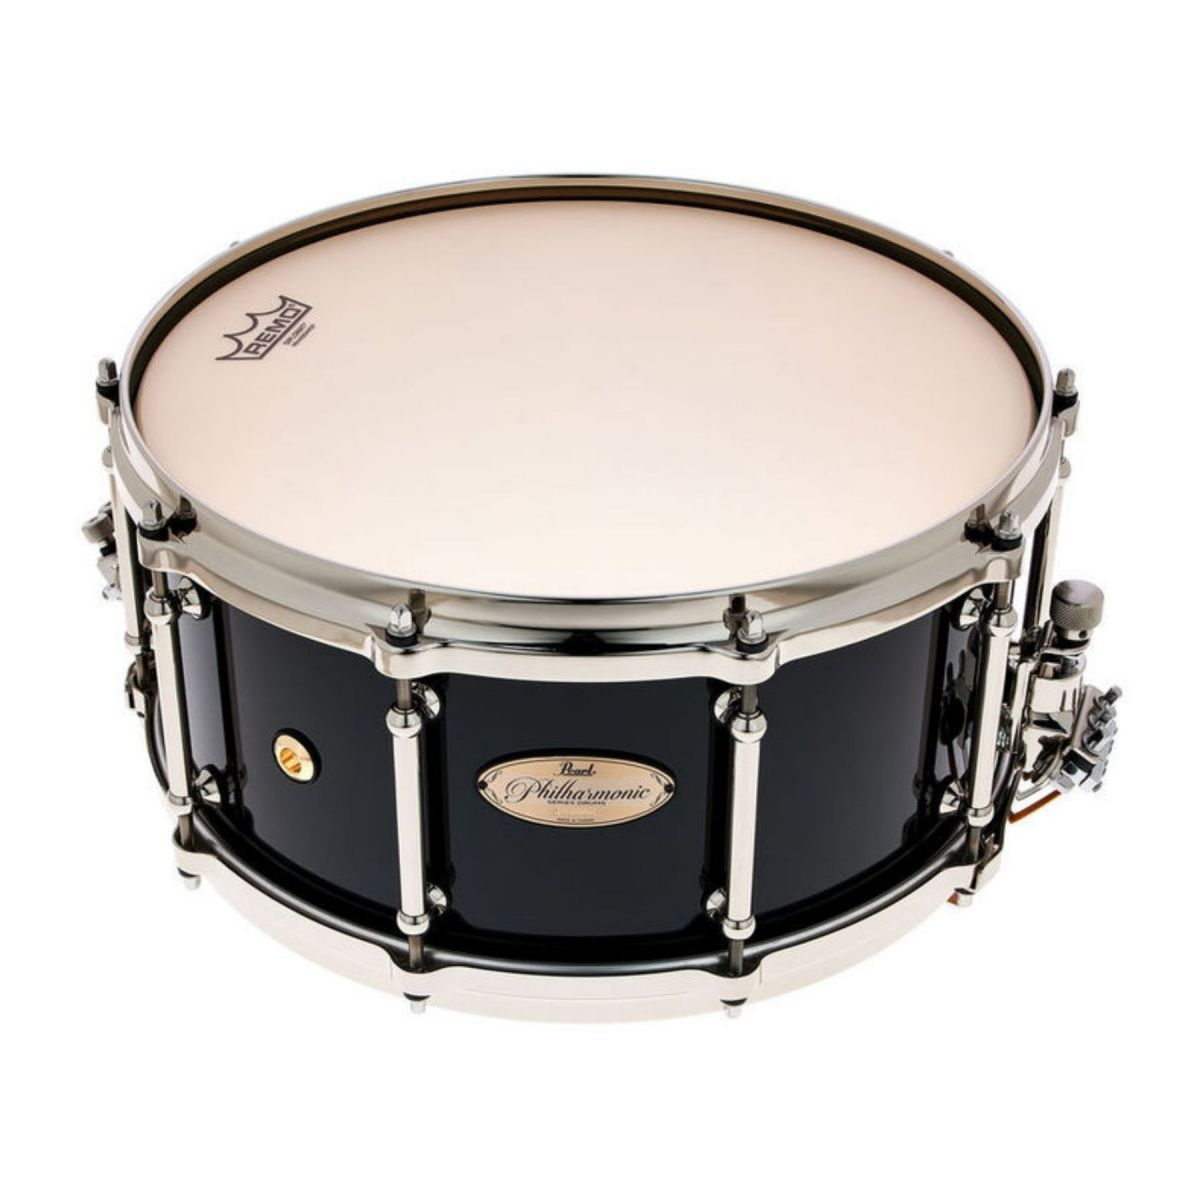 """Rullante Pearl 14"""" x 6,5"""" Philharmonic 8-Ply Concert Maple PHP1465/N103 piano black"""